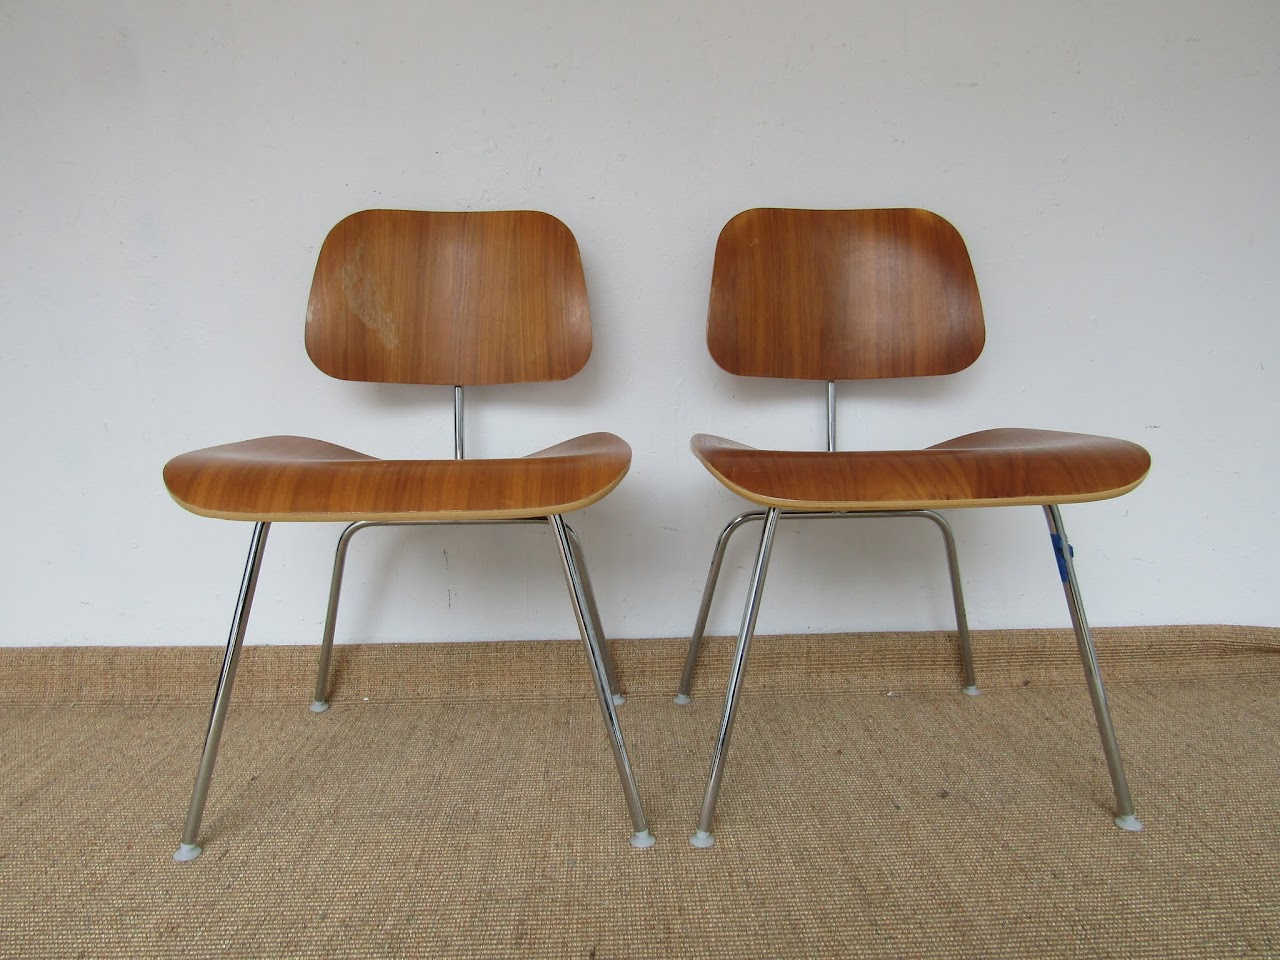 Eames Molded Plywood Chair Pair (1)